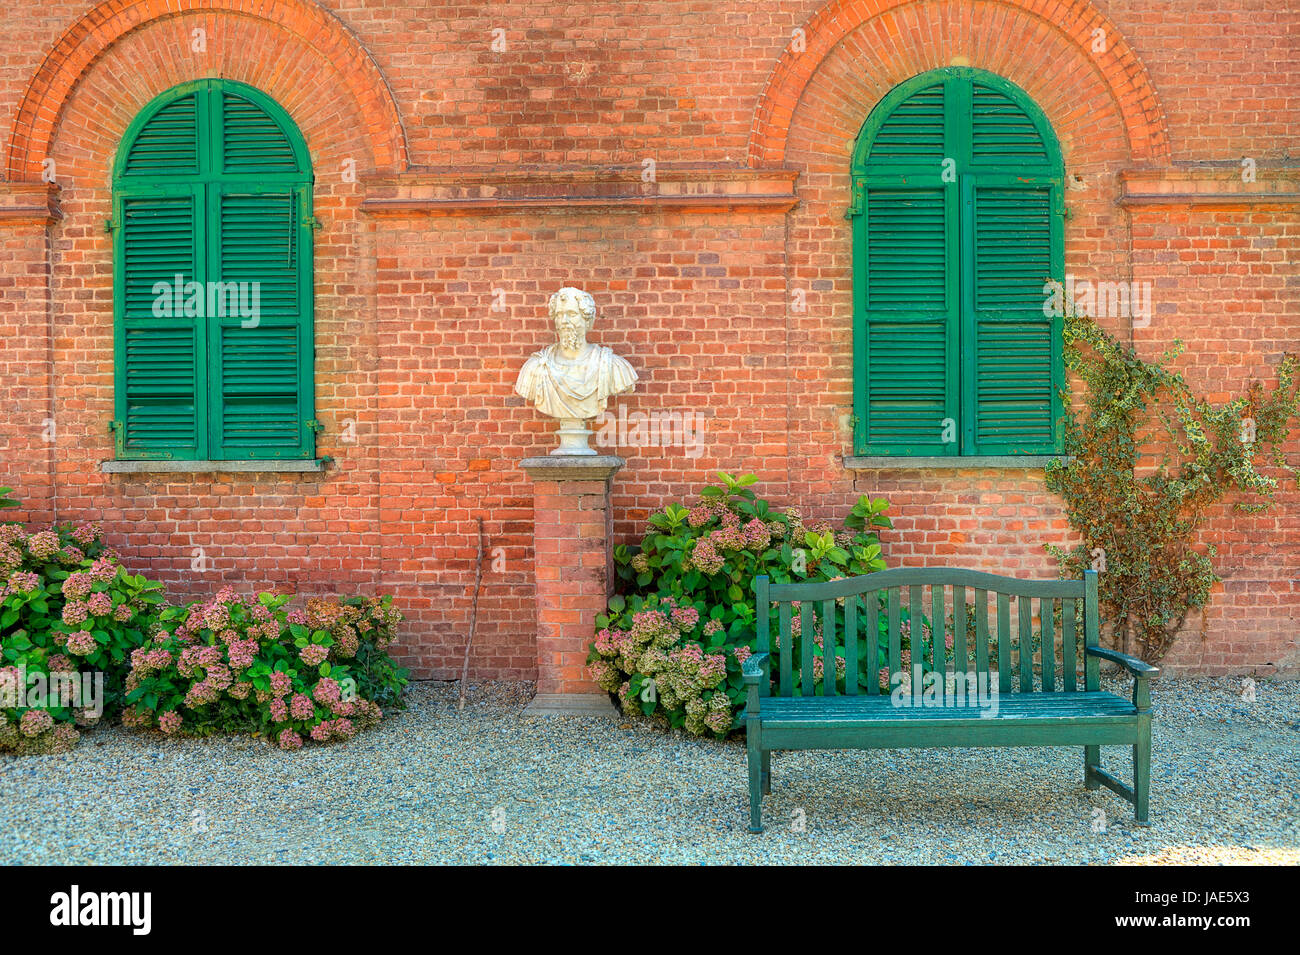 Exceptional Wooden Bench Stand On The Gravel In Front Of Red Brick House With Closed  Green Shutters In Park Of Racconigi In Piedmont, Northern Italy.